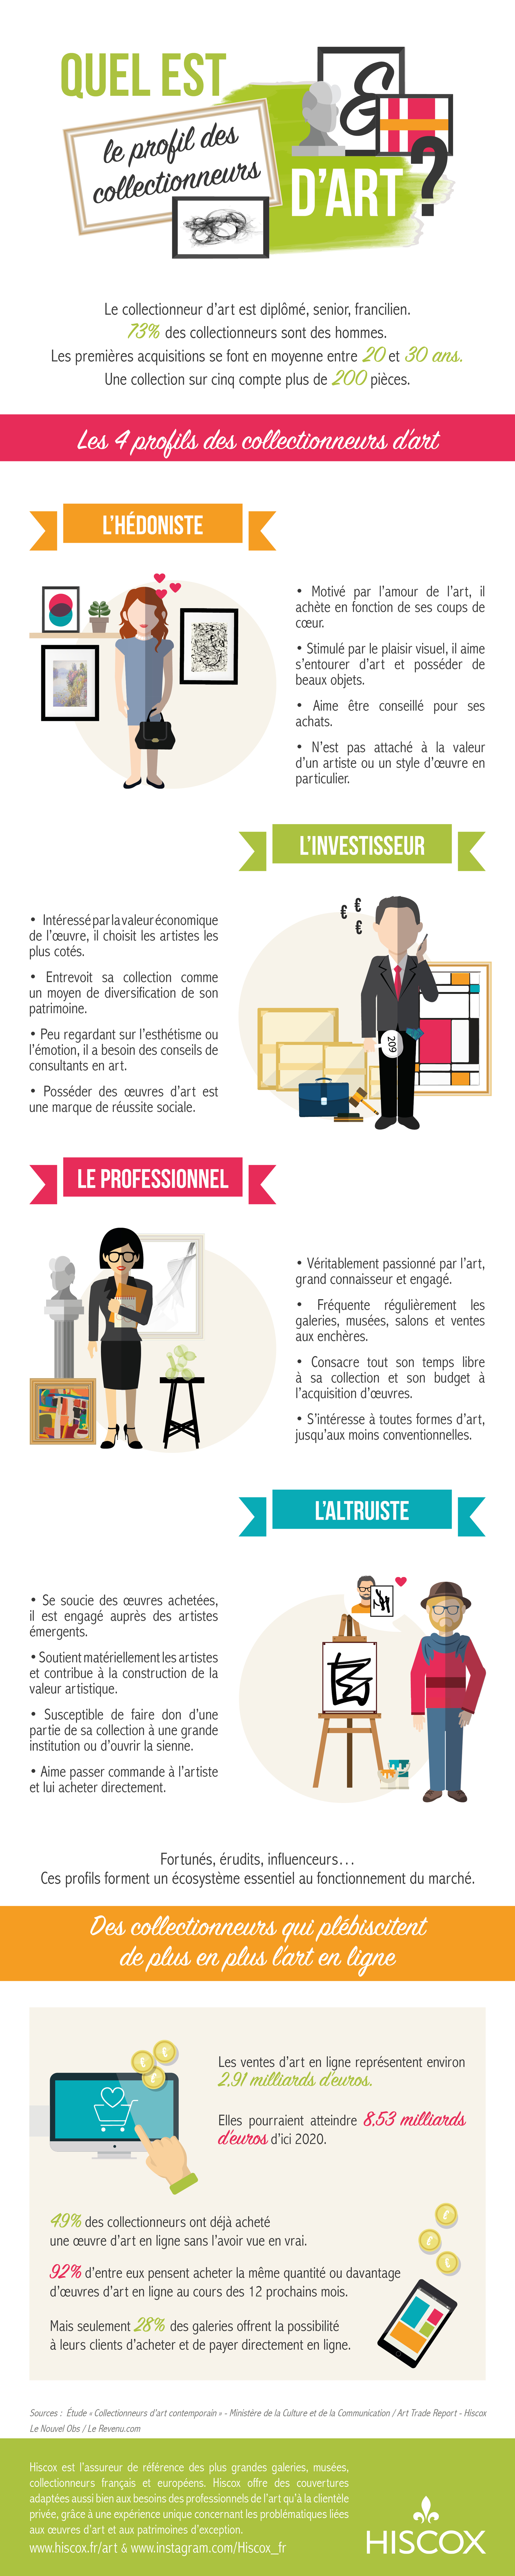 Infographie Fiac Profil Collectionneur Art Contemporain